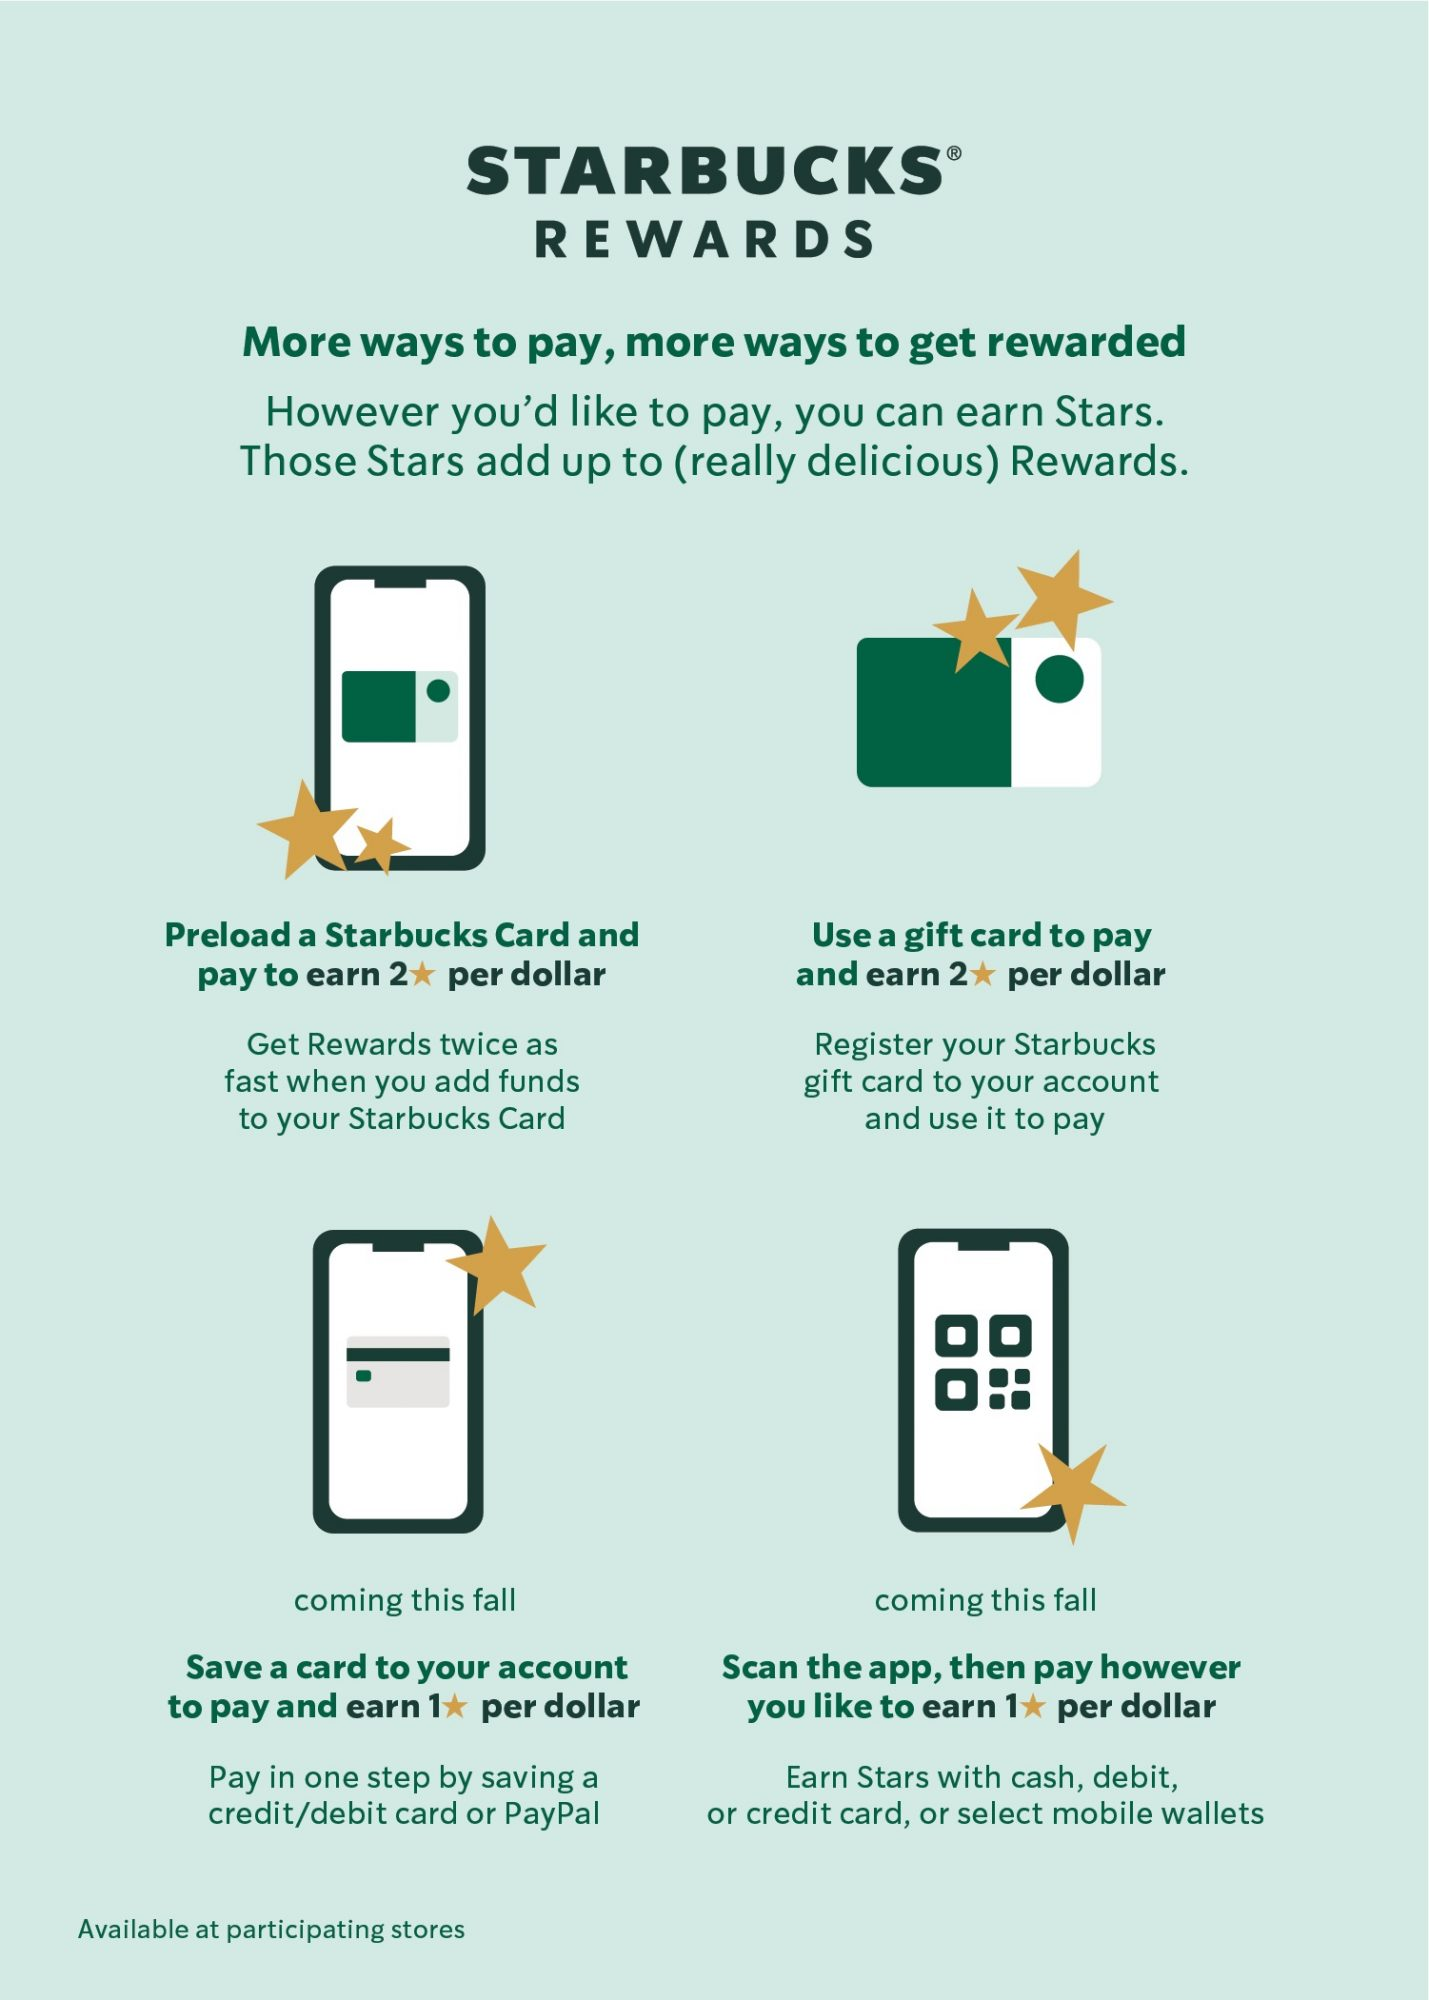 Starbucks new rewards payment policy